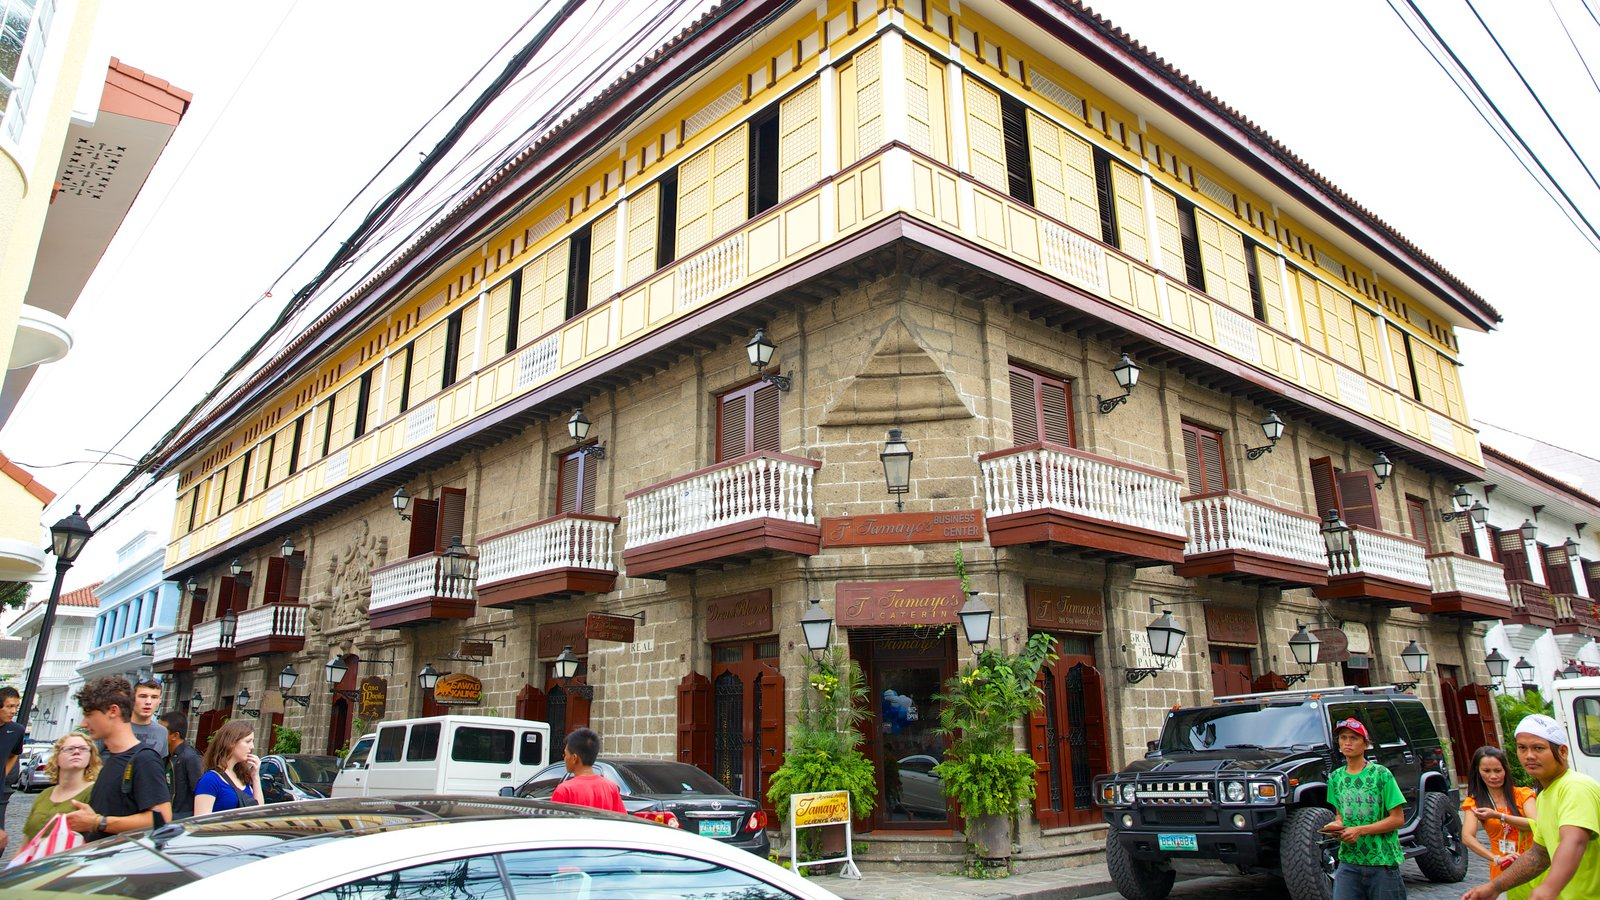 manila museum [php 2,20000++] find the best value hotels & resorts near san agustin museum, manila, philippines we accept credit cards and bank transfers travelbookph guarantees the best prices.